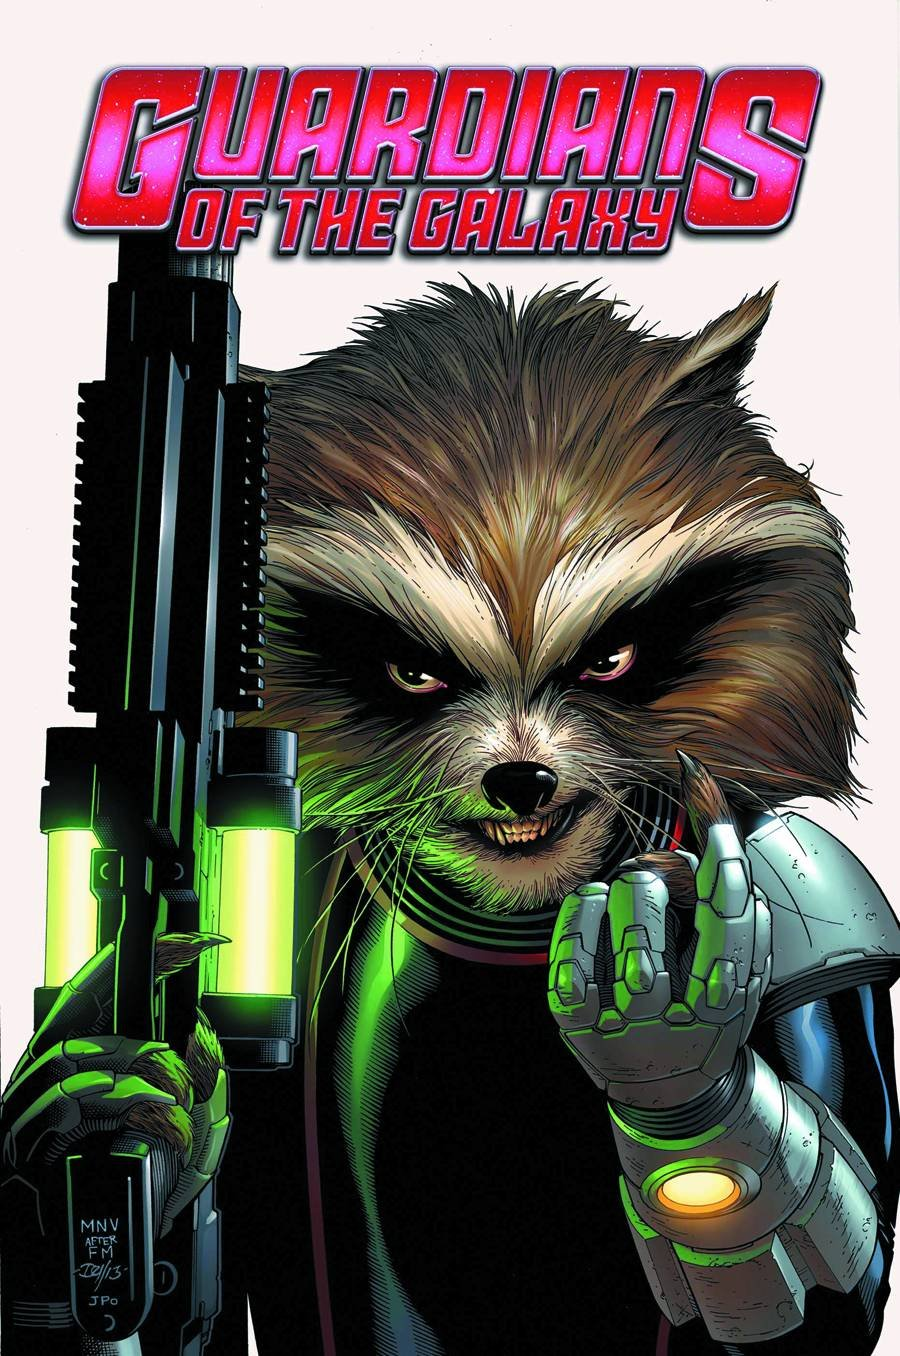 Guardians of the Galaxy #3 (Marvel Now!) Rocket Raccoon Cover pdf